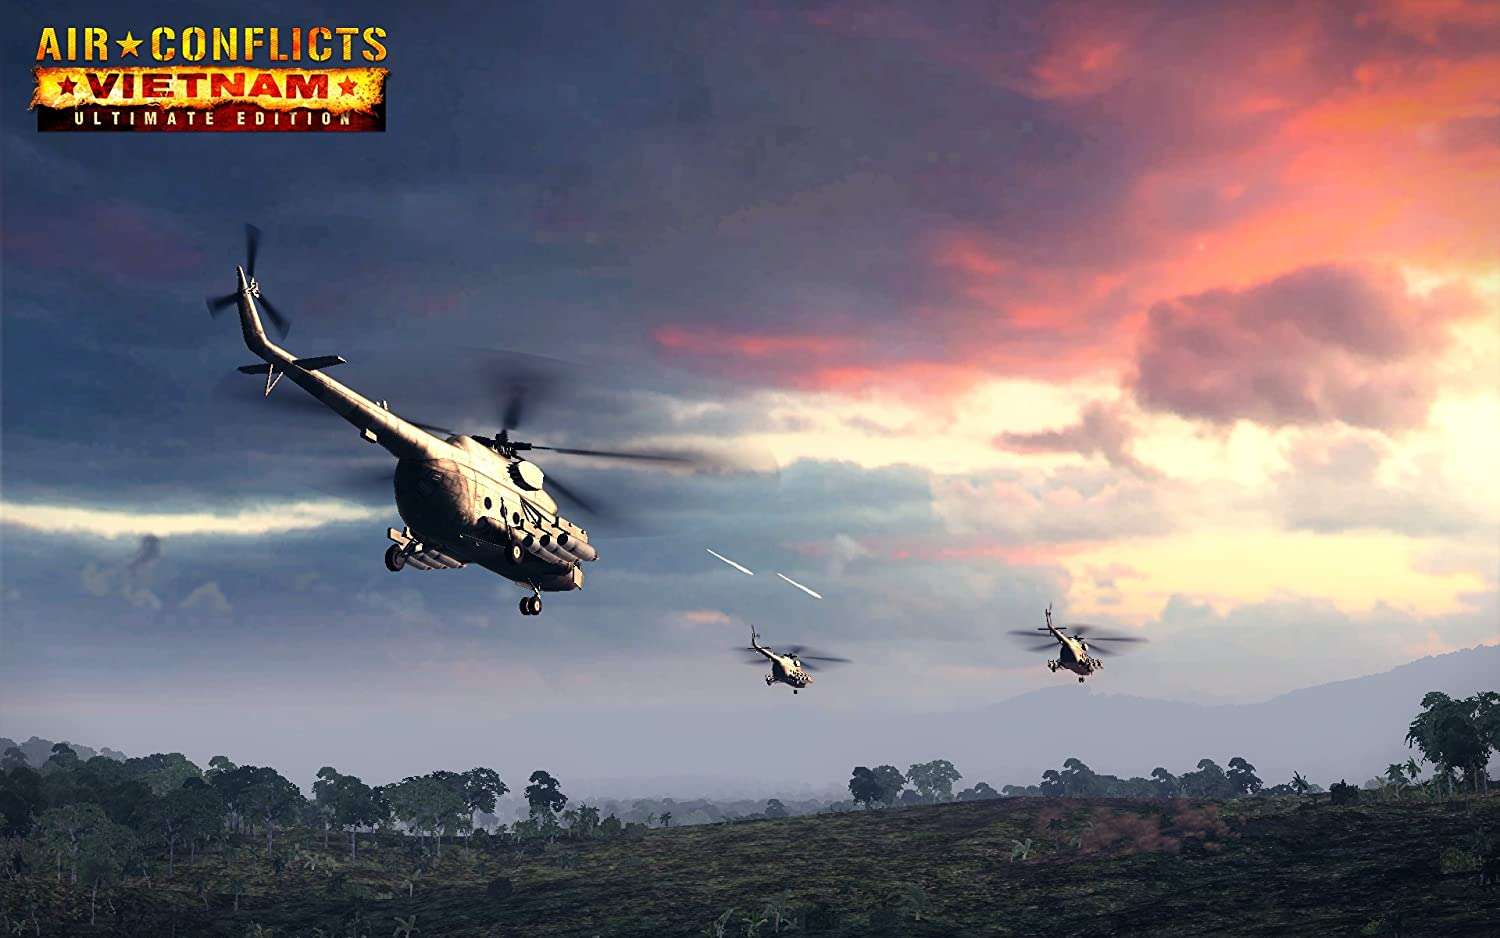 Air conflicts vietnam ps4 amazon pc video games sciox Image collections